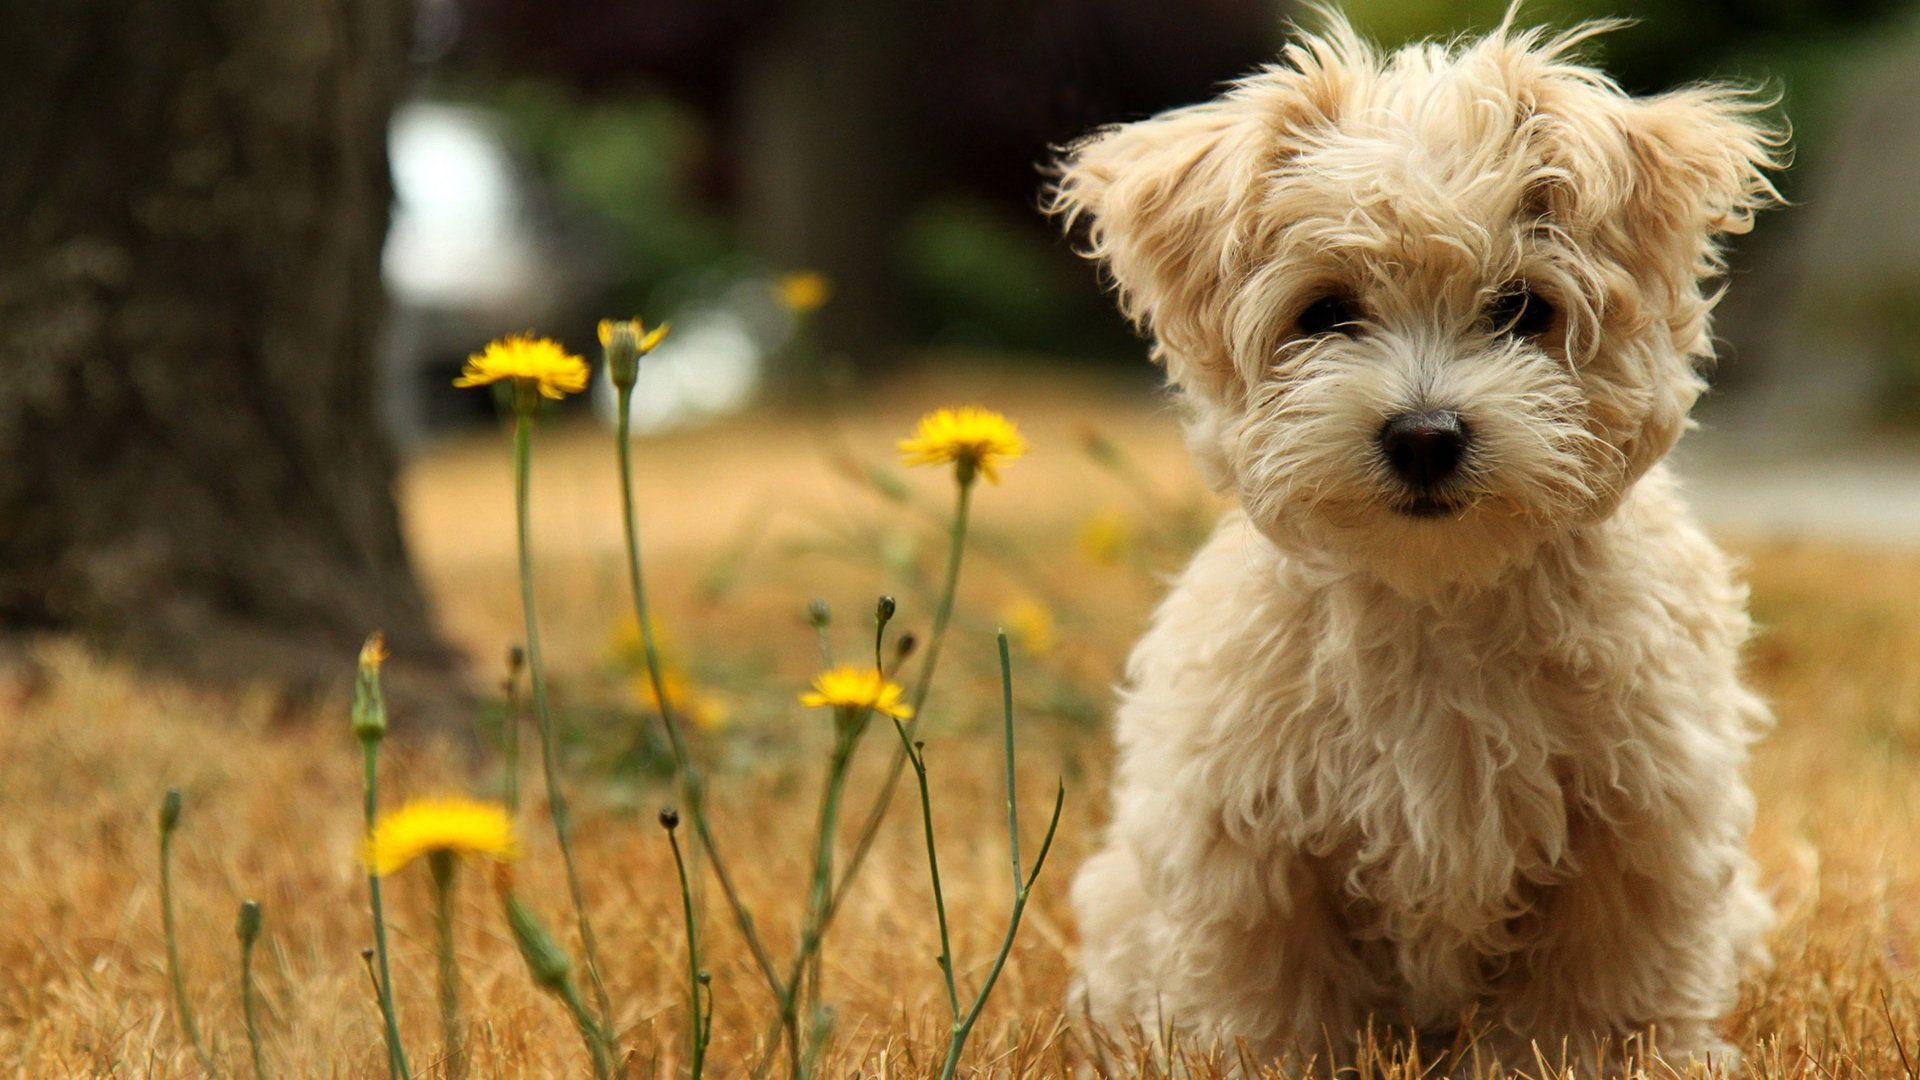 Free Download Cute Laptop Wallpapers 1920x1080 For Your Desktop